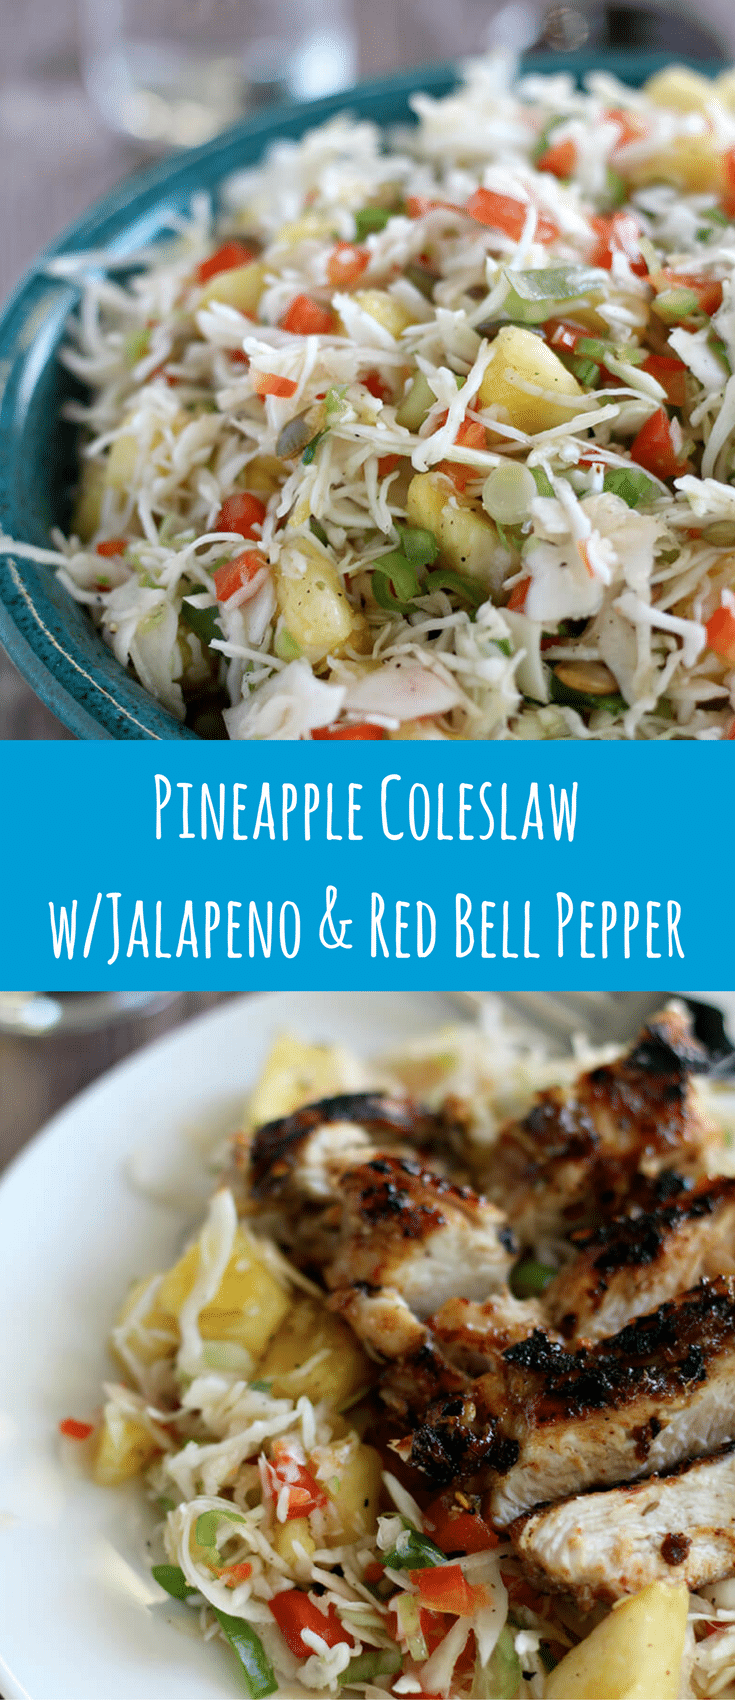 Pineapple Coleslaw with jalapeno and red bell pepper is just what you need to liven up your summer cookout! An easy, make ahead dish that's ready in minutes.